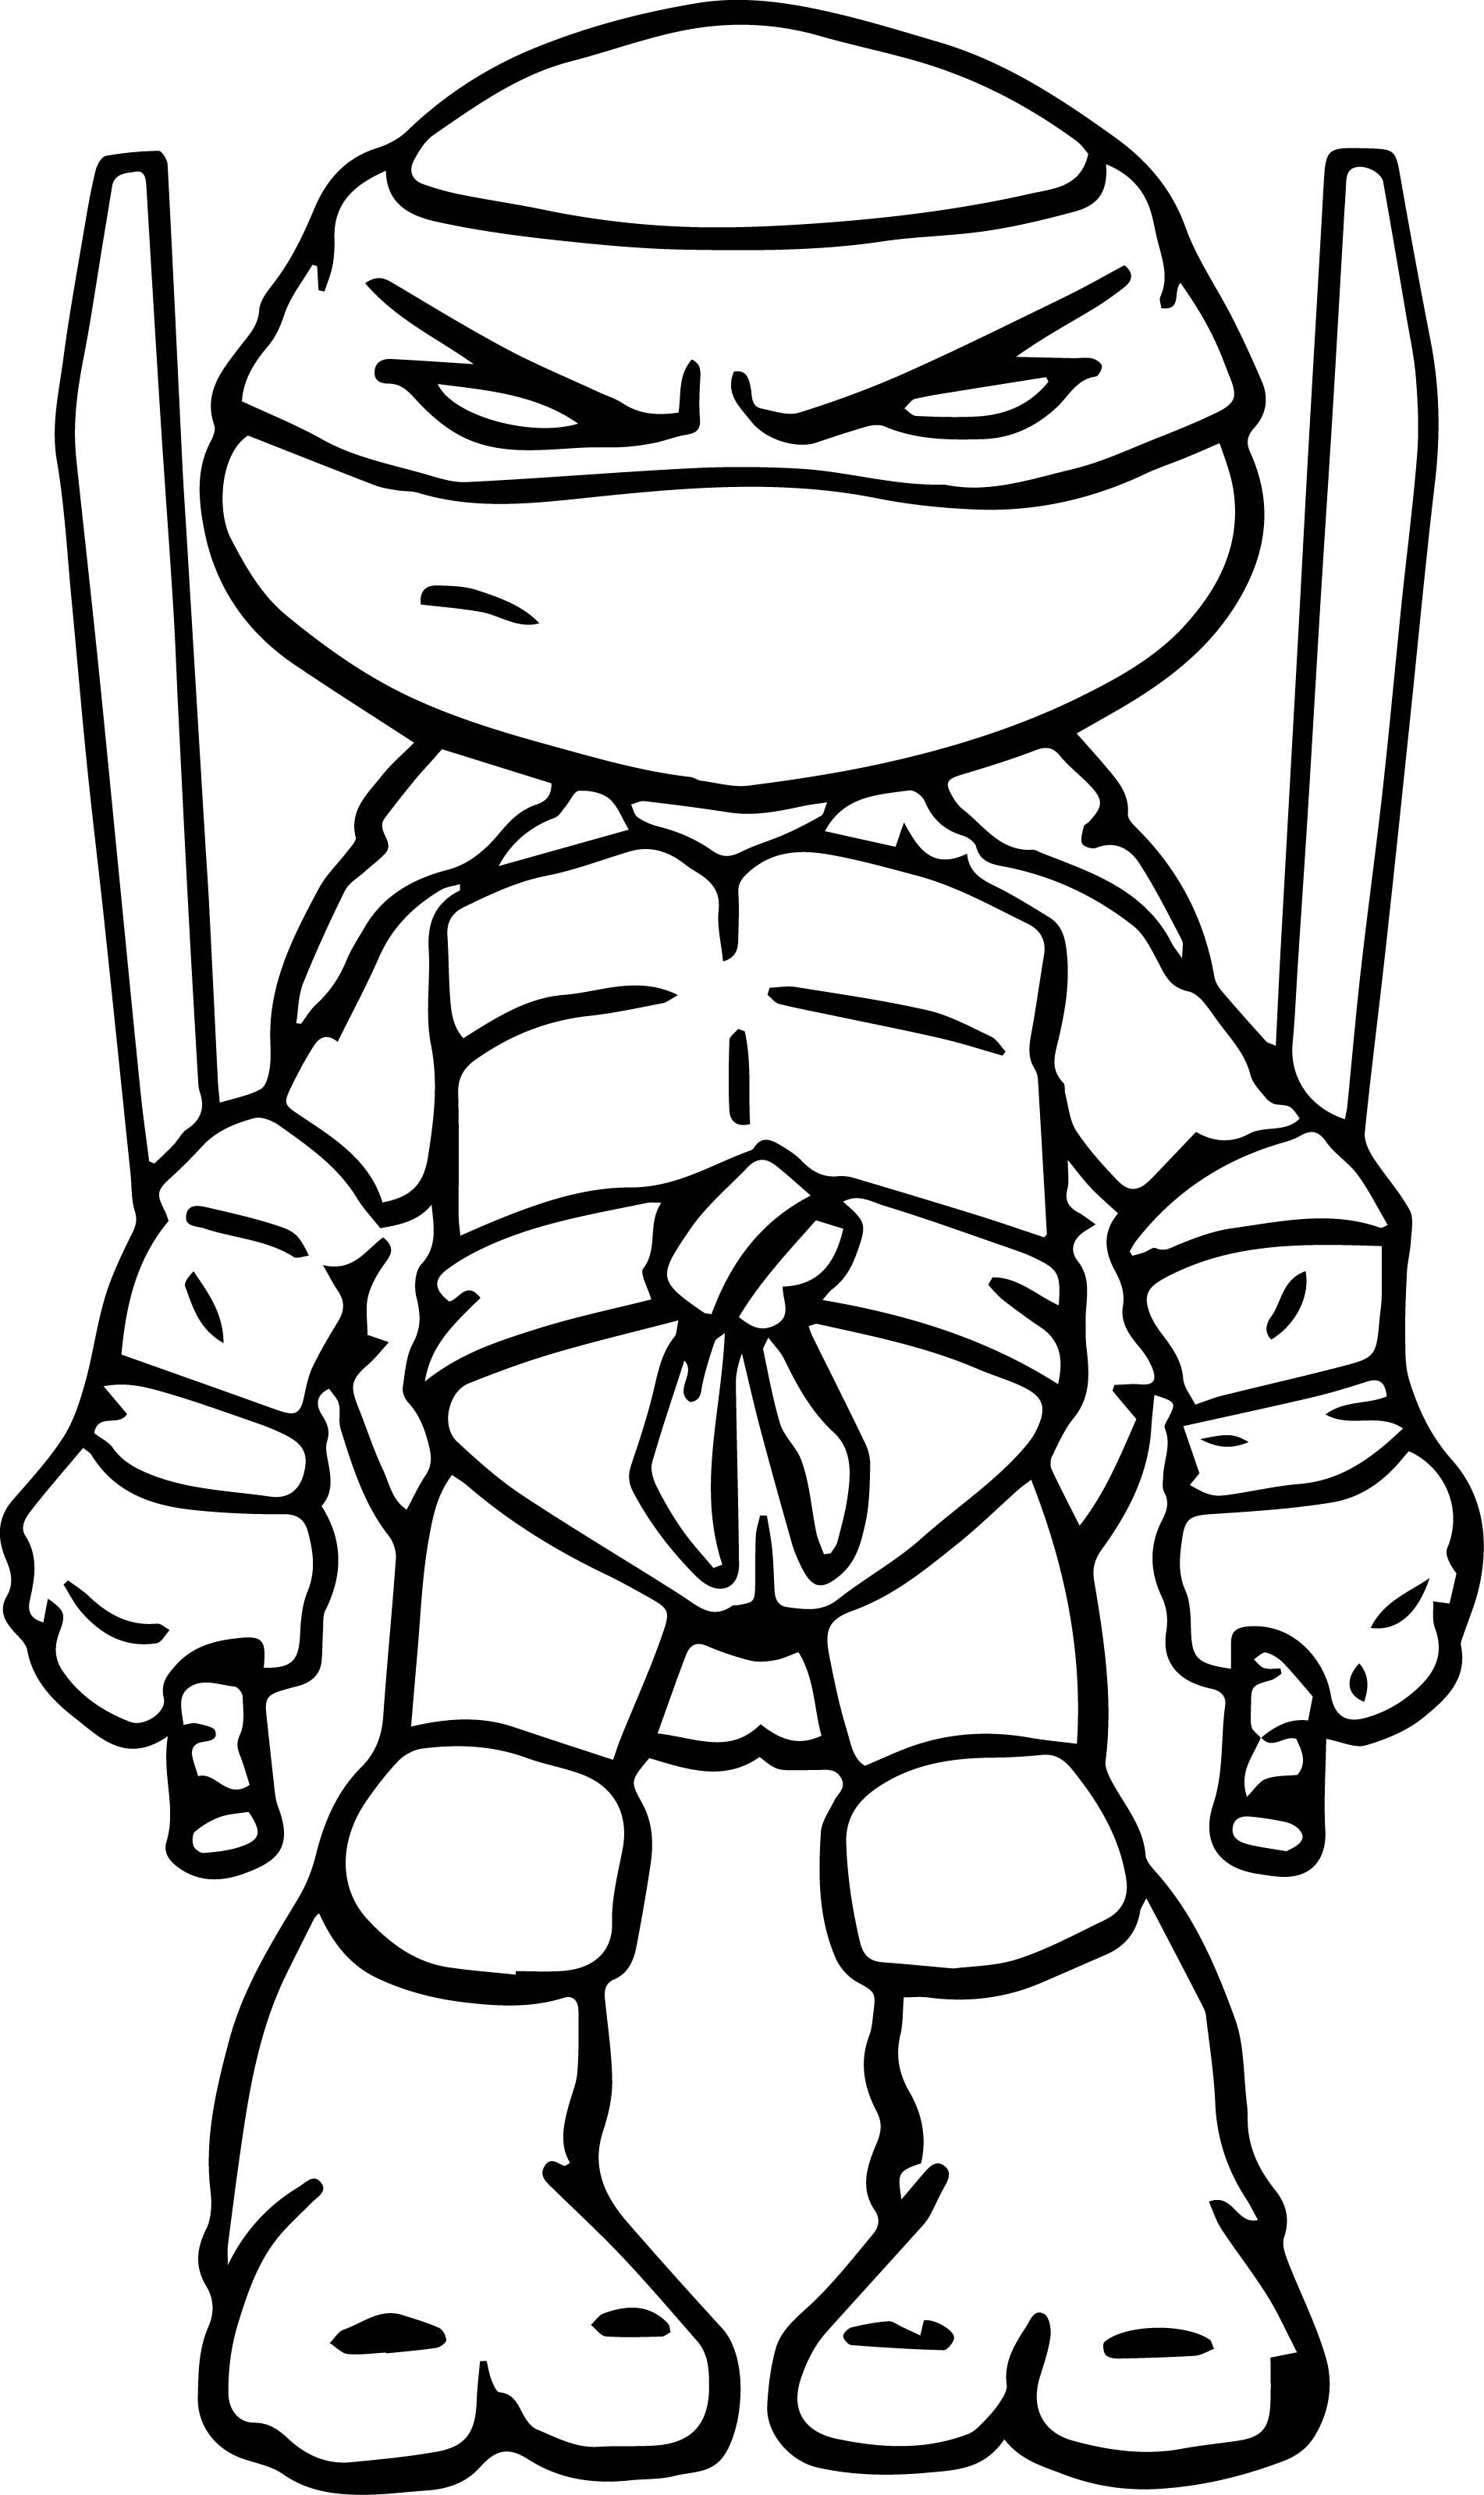 Ninja turtles art coloring page tmnt party pinterest for Coloring pages turtles ninja